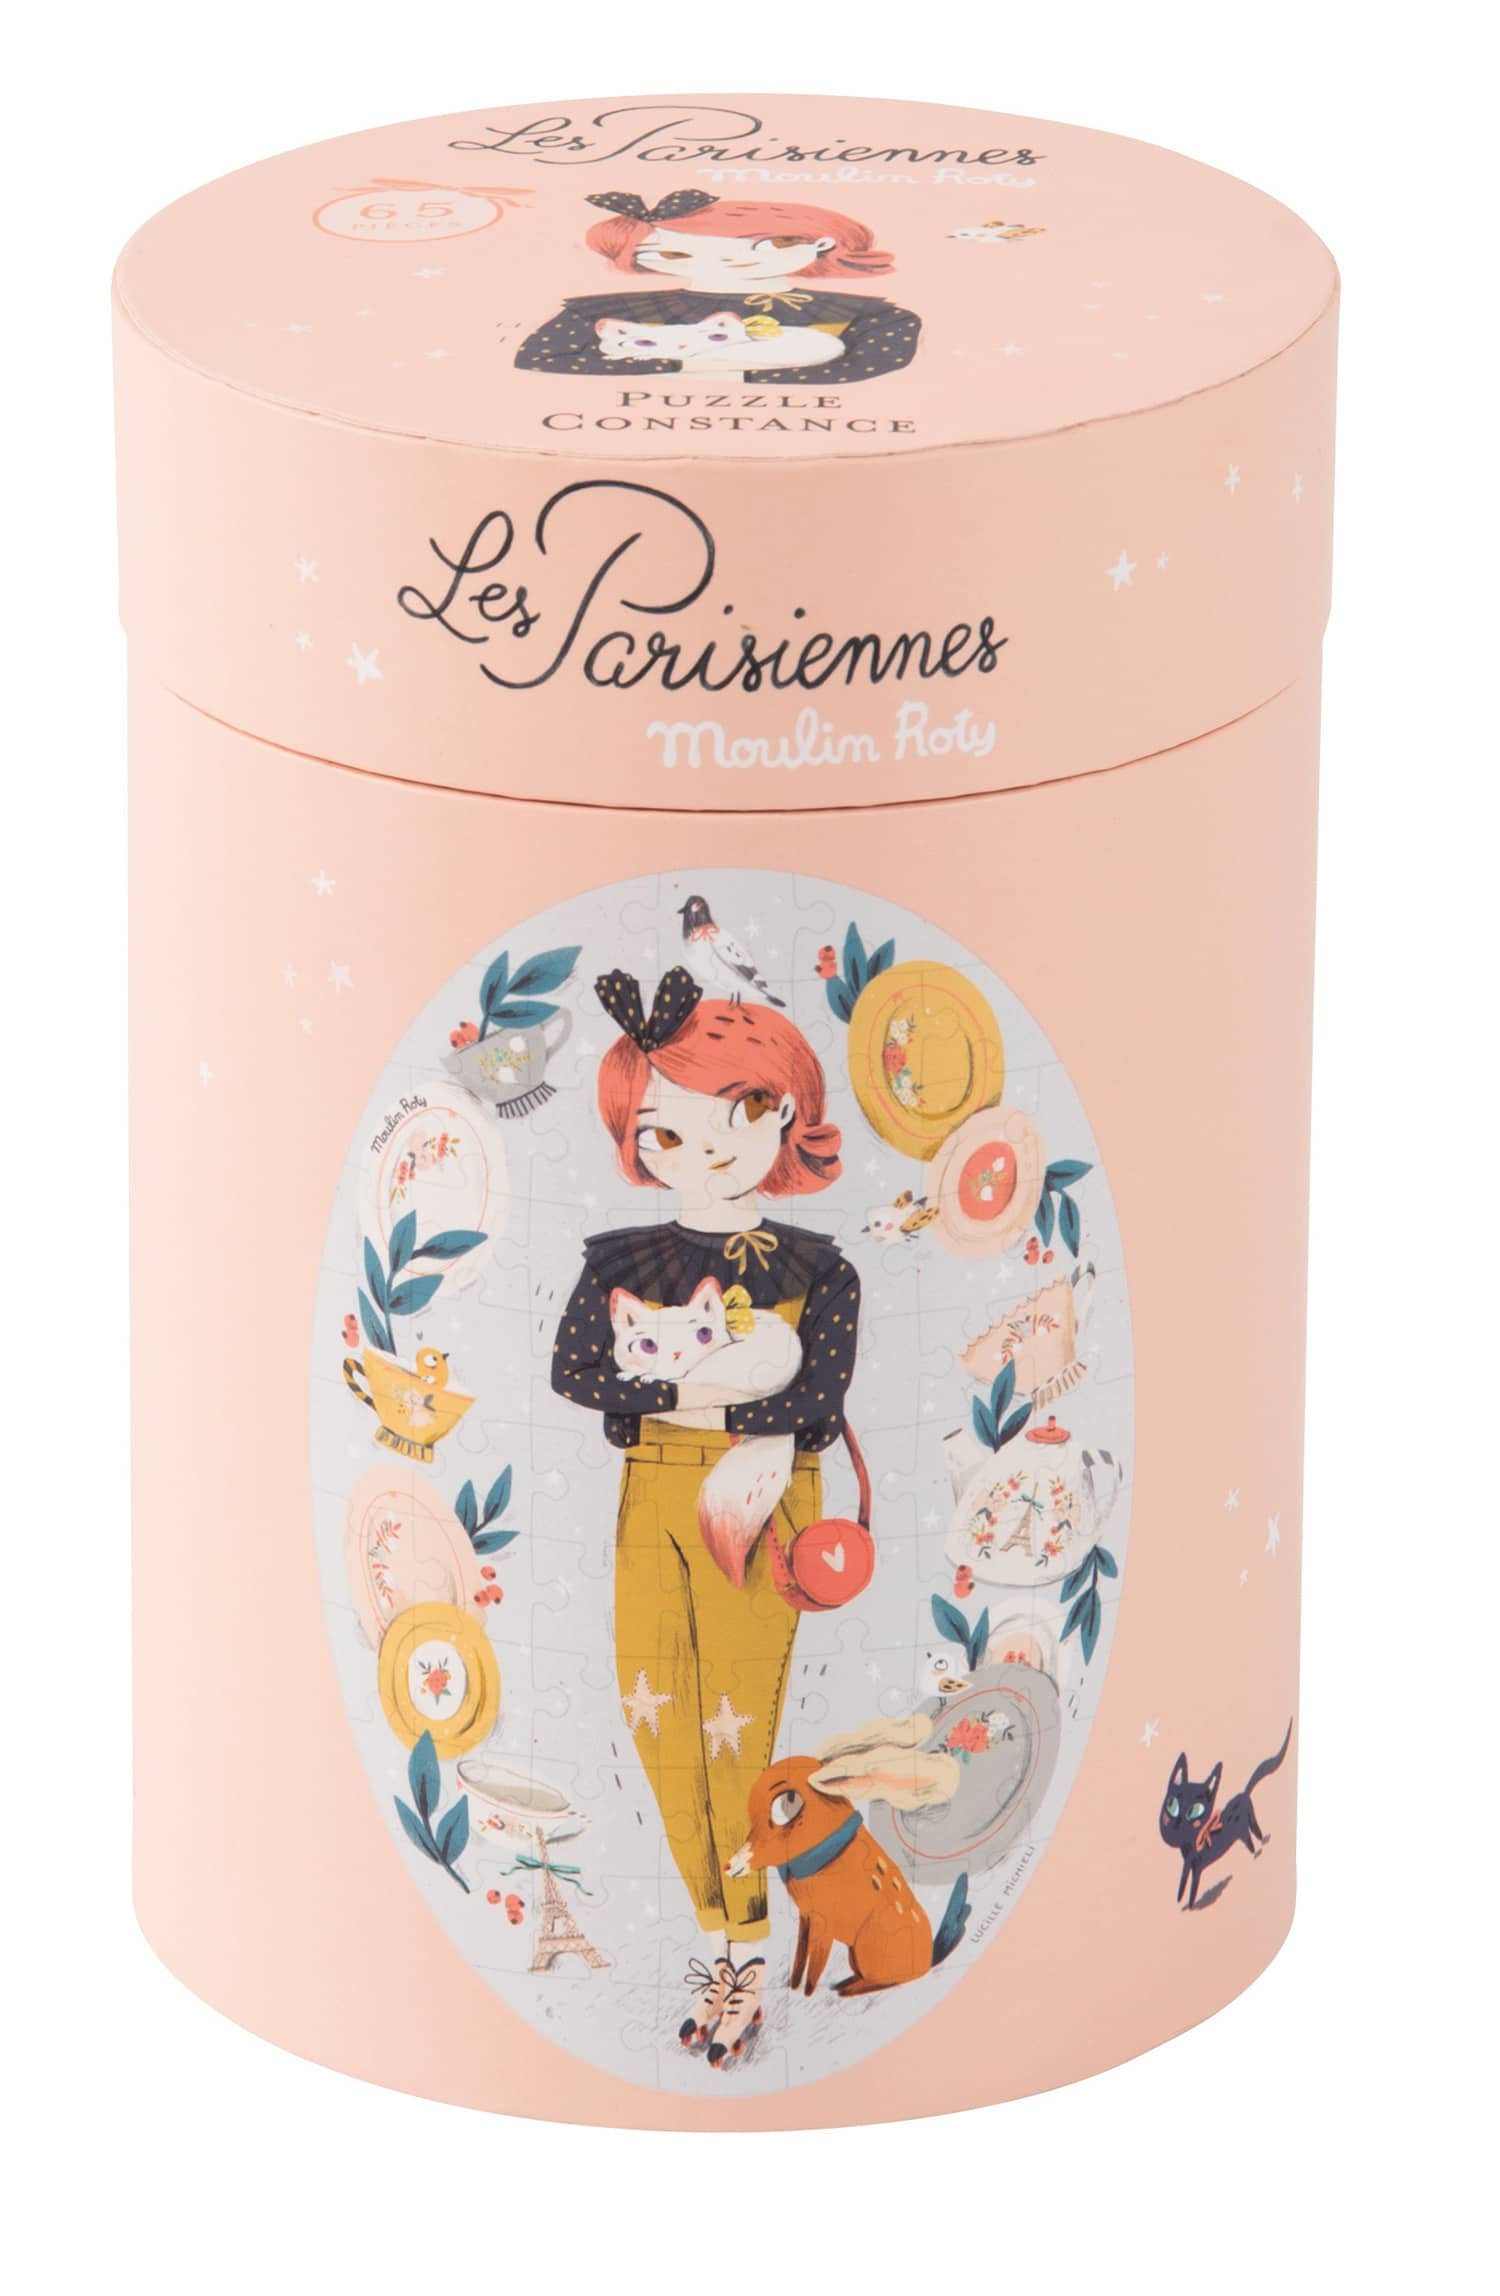 Cylinder shaped box containing illustrated puzzle of Les Parissienes doll, Constance - Moulin Roty 642 543